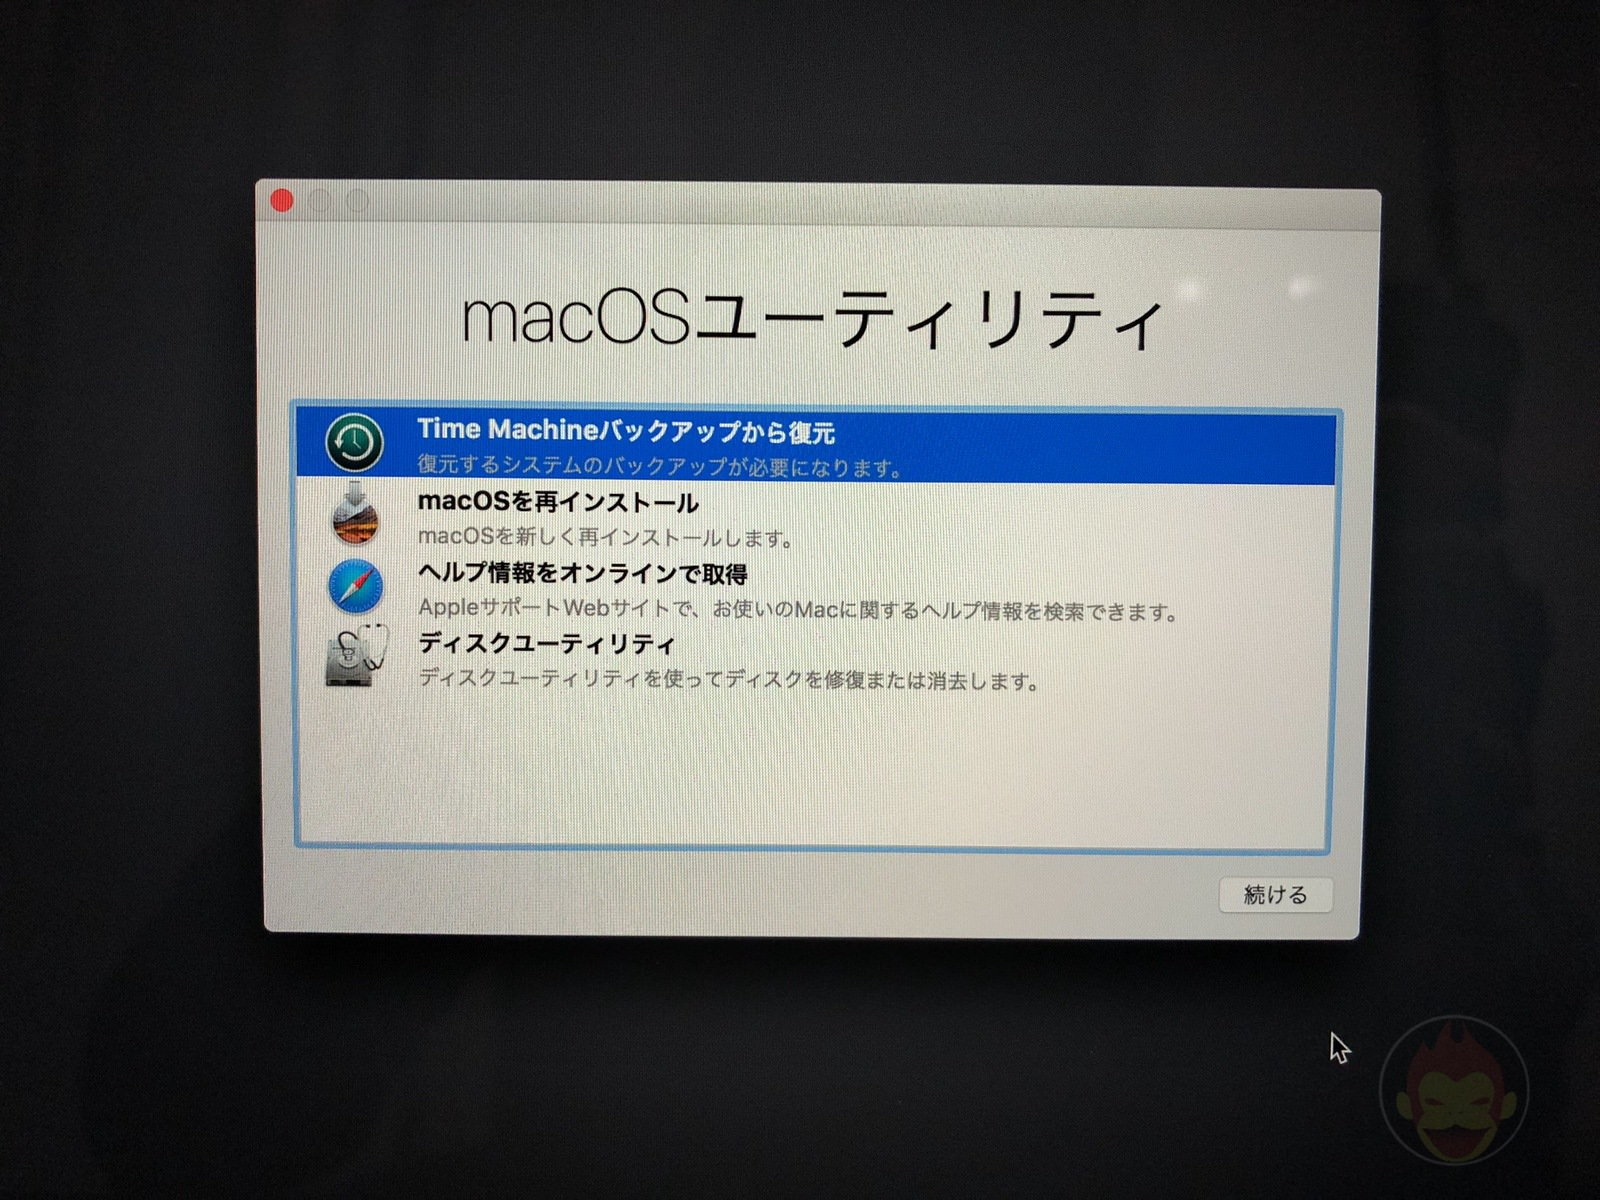 How to reset macOS on Mac 56